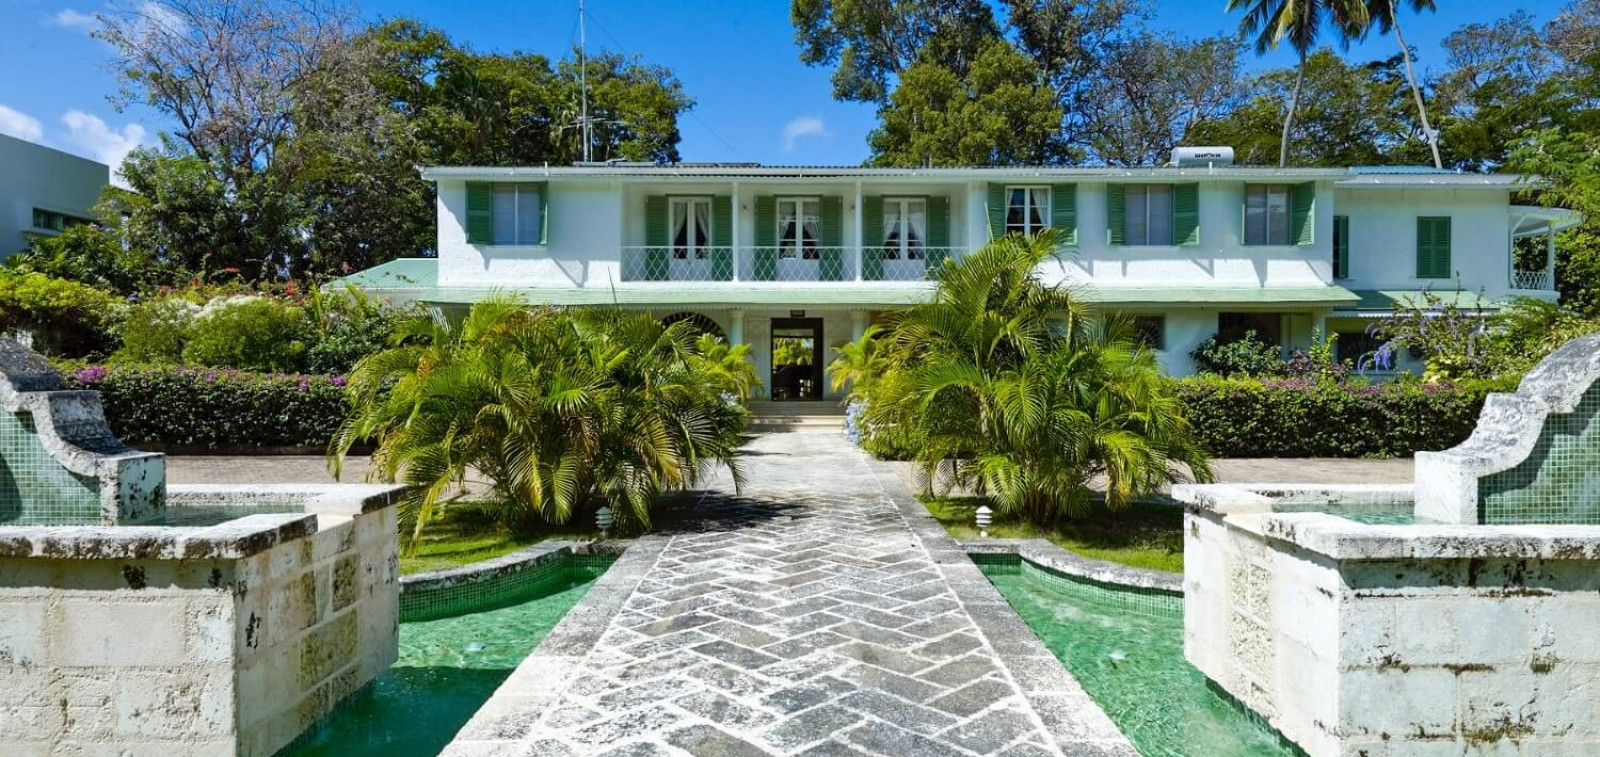 Driveway 8 Bedroom Beachfront in St James with Speed Boat & Private Pool